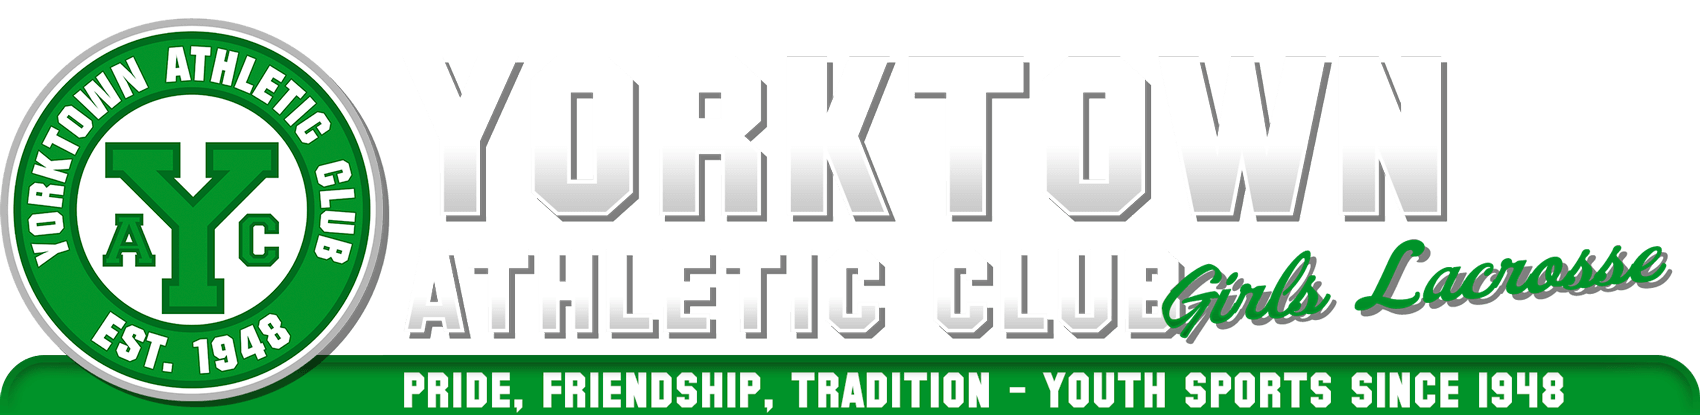 Yorktown Athletic Club, Girls Lacrosse, Lacrosse, Run, Field